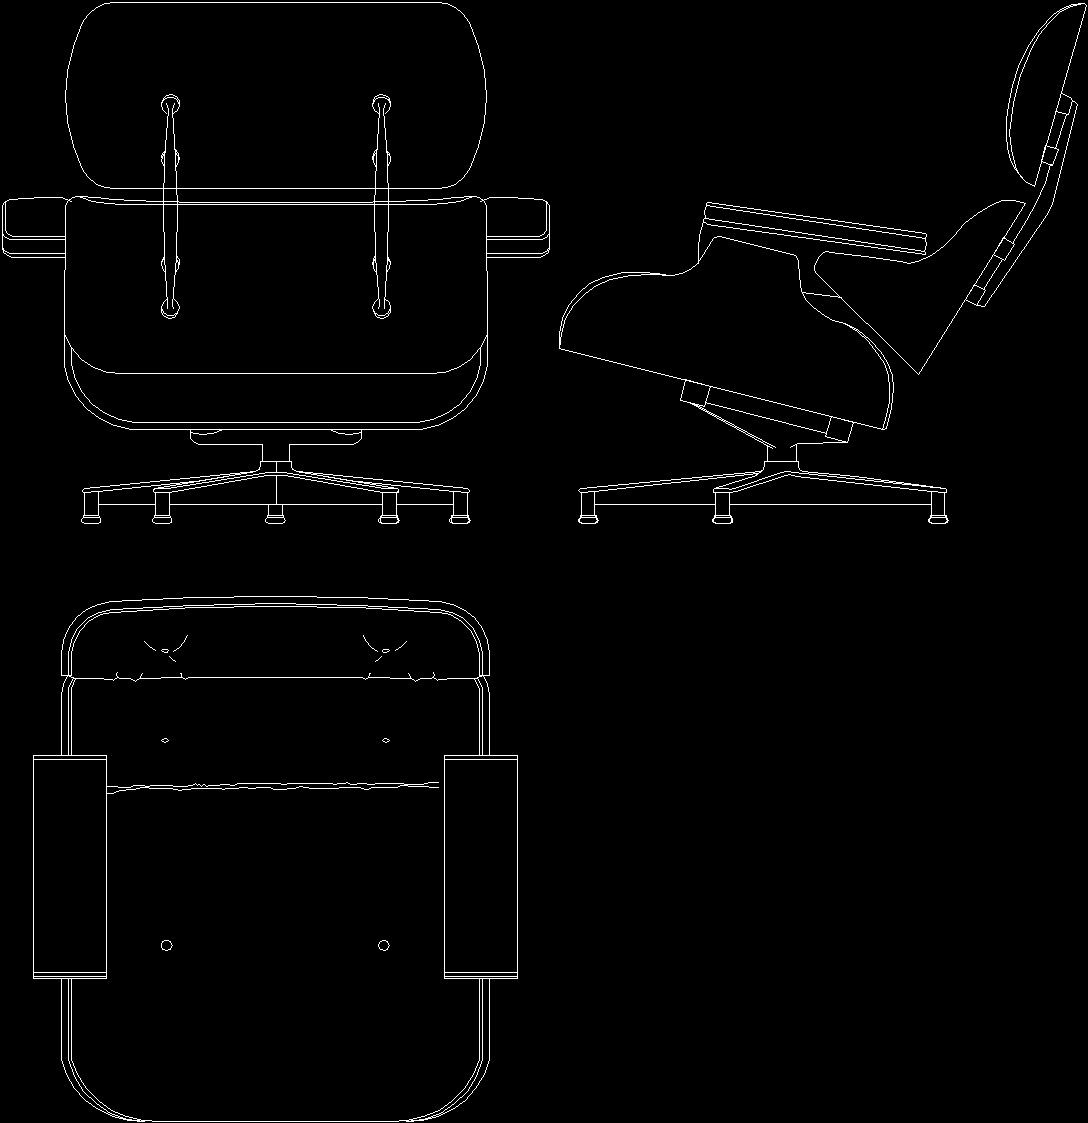 Charles Eames Lounge Chair 1956 Dwg Block For Autocad